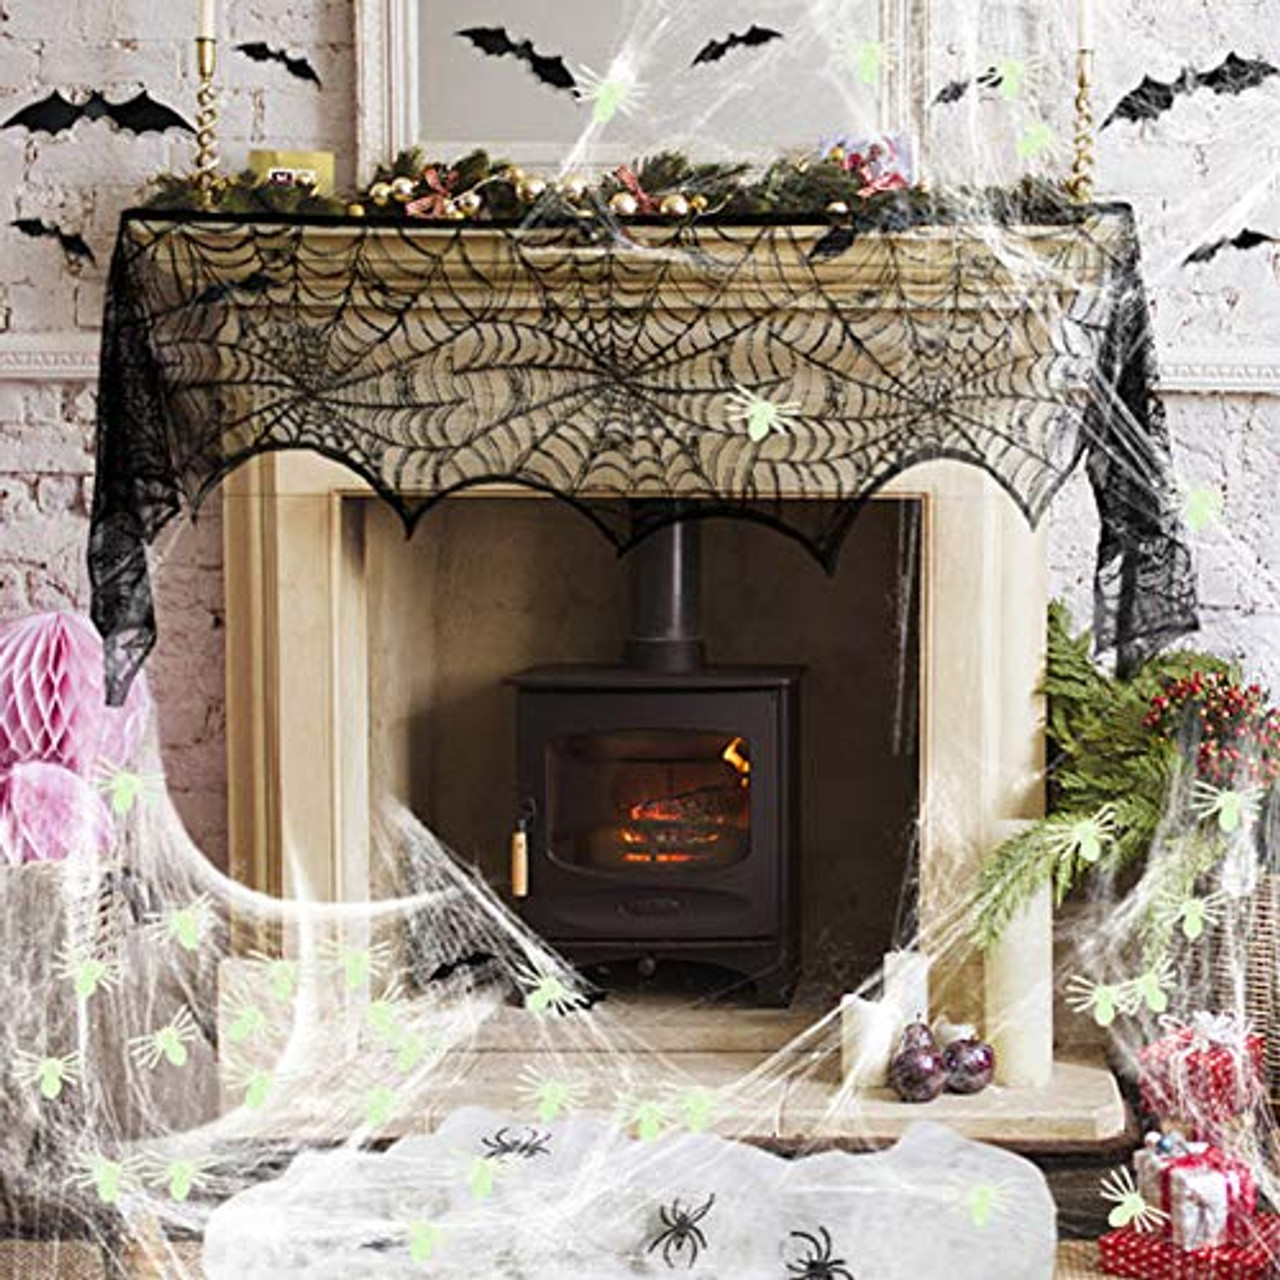 Halloween Decoration Fireplace Mantel Scarf 20 Pcs 3D Scary Bats Wall Stickers Stretch Spider Web Indoor & Outdoor 4 Pcs Fake Black Spiders 50 Pcs